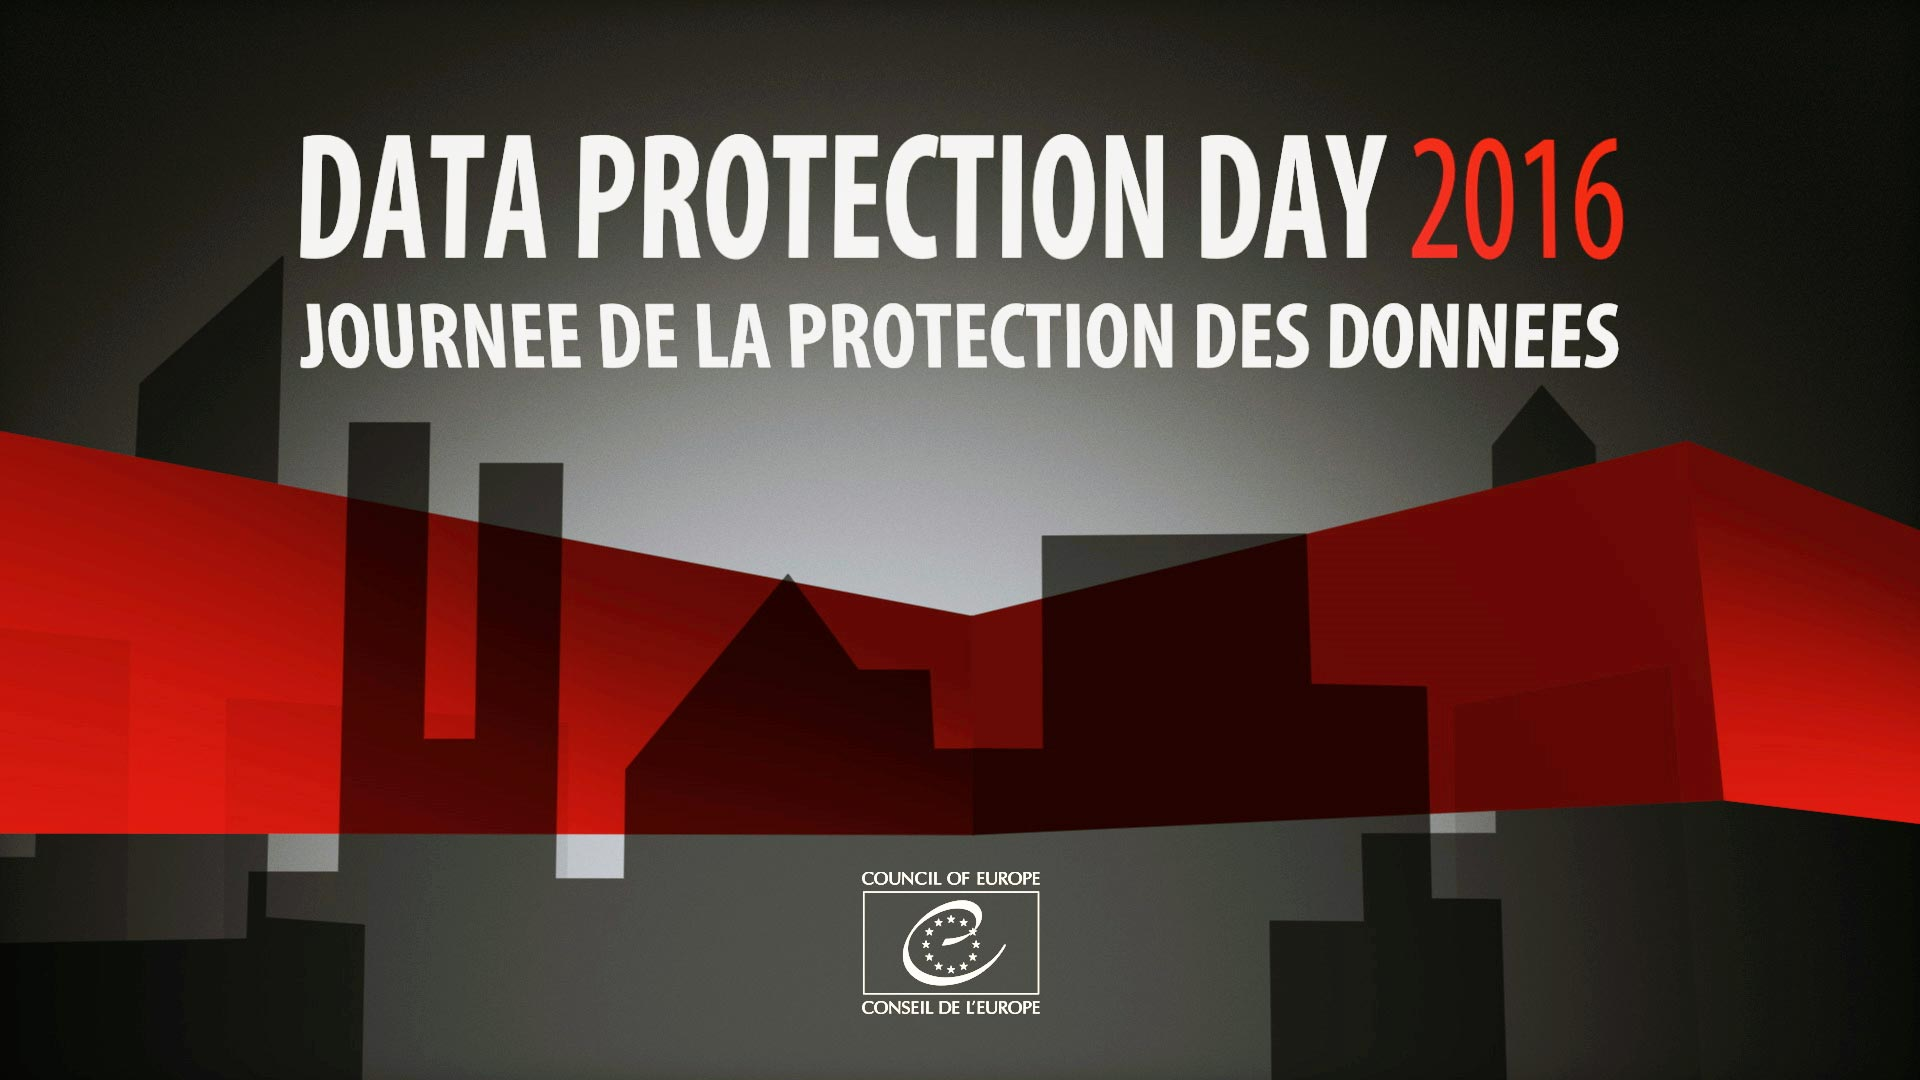 Data Protection Day turns 10 this year